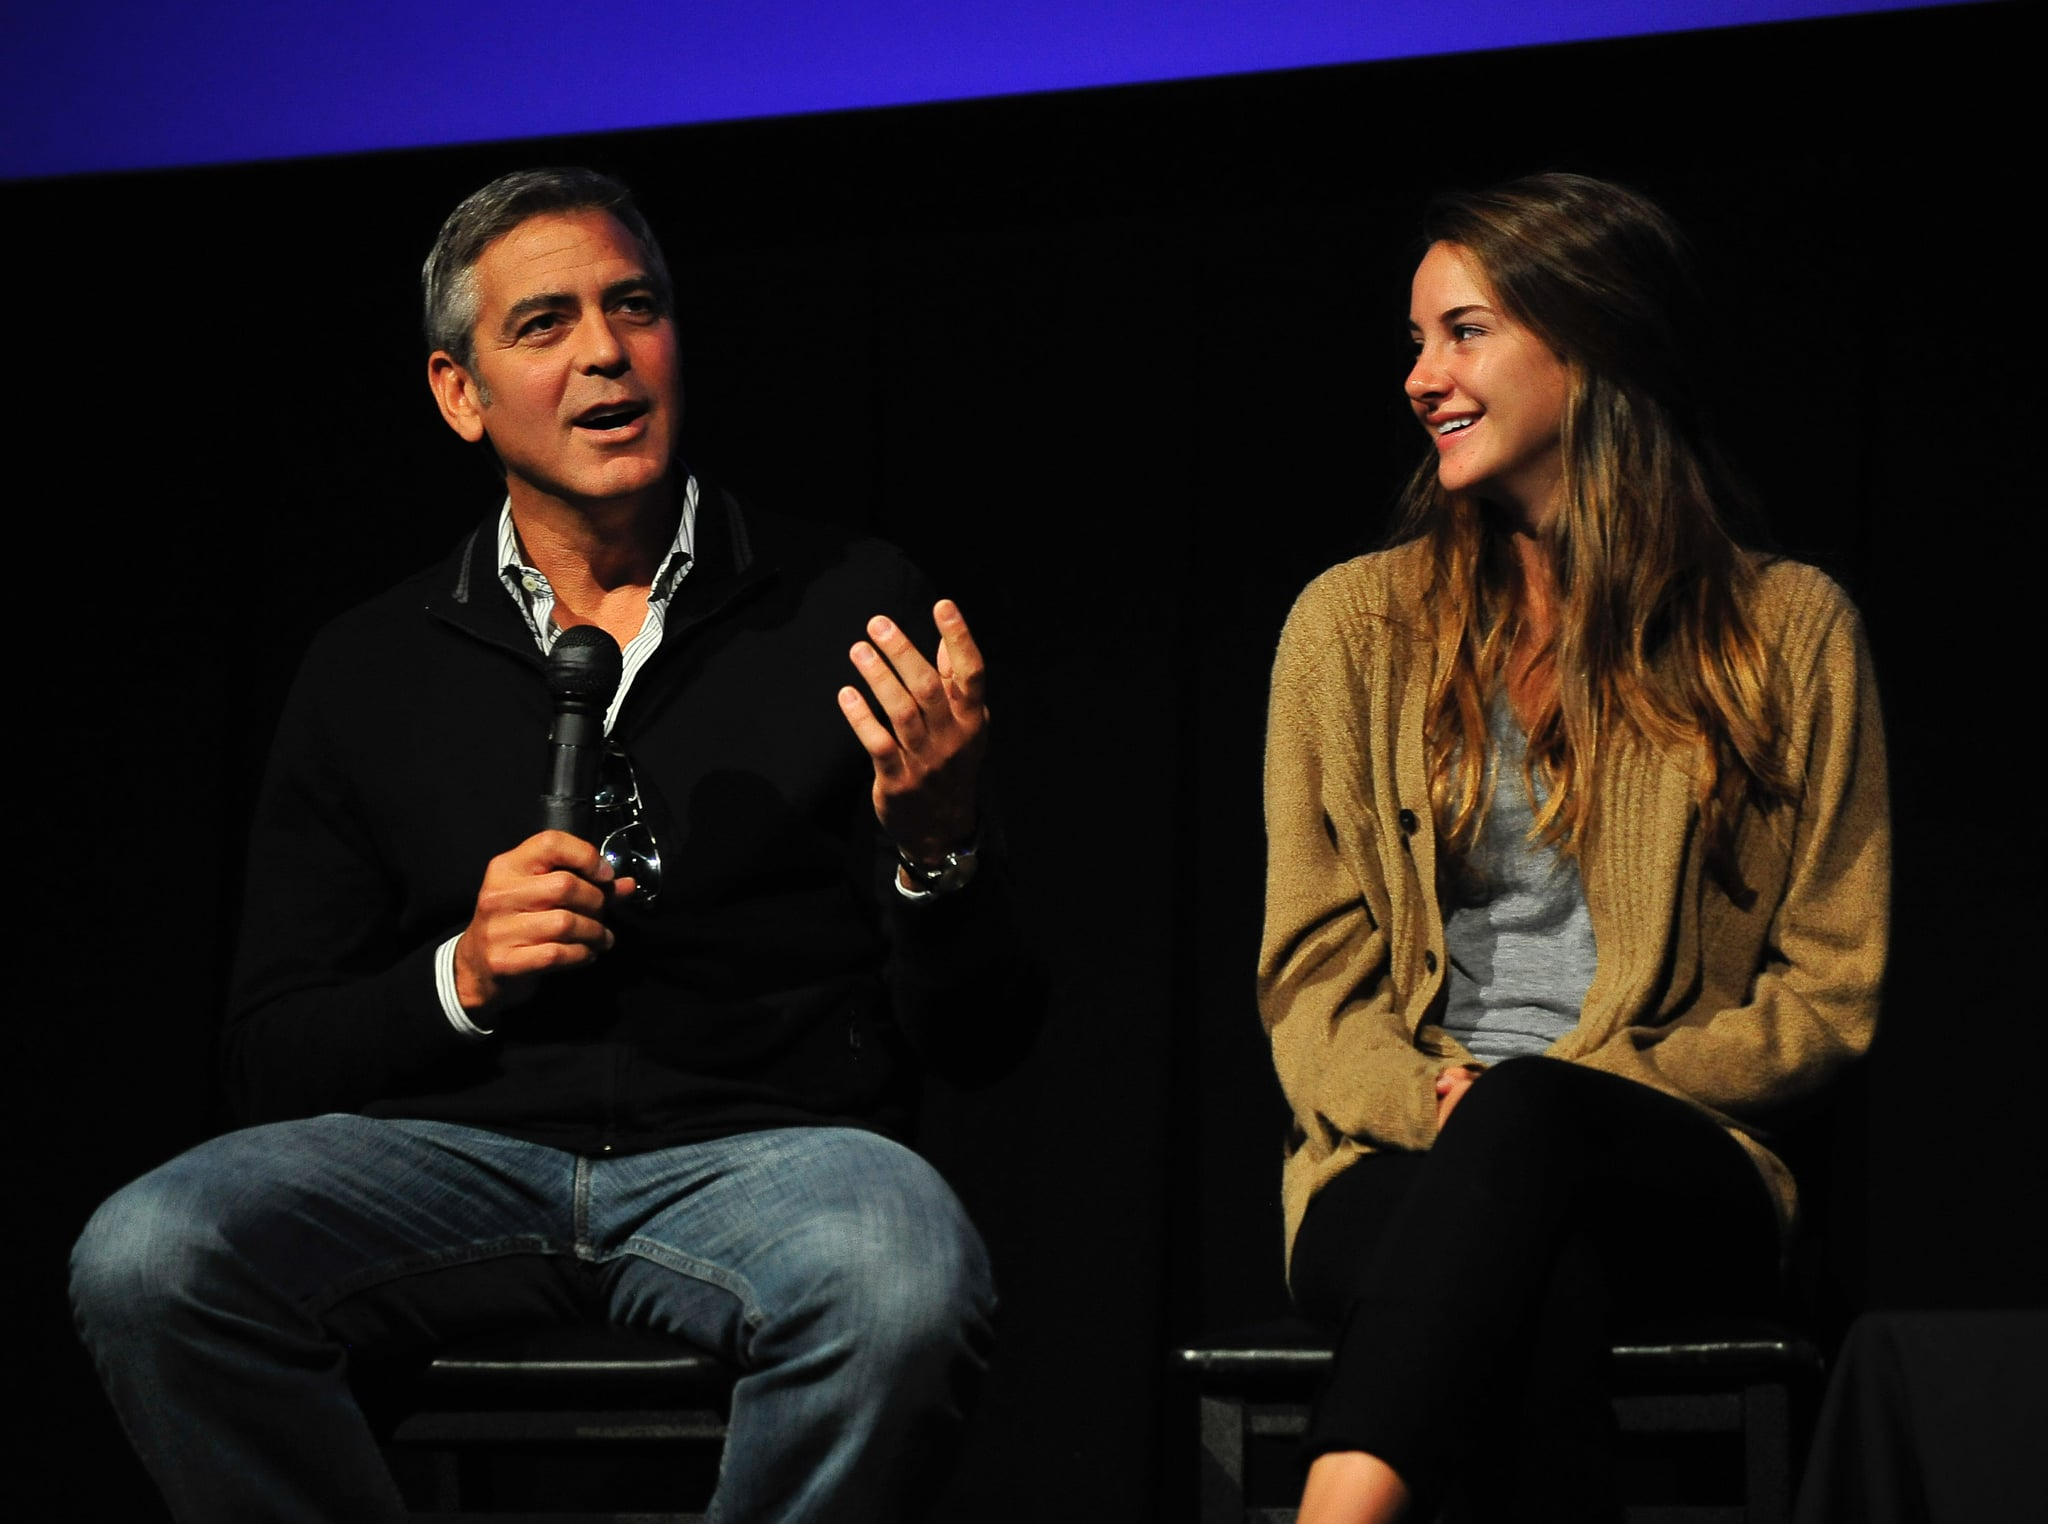 George Clooney at the Telluride Film Festival.